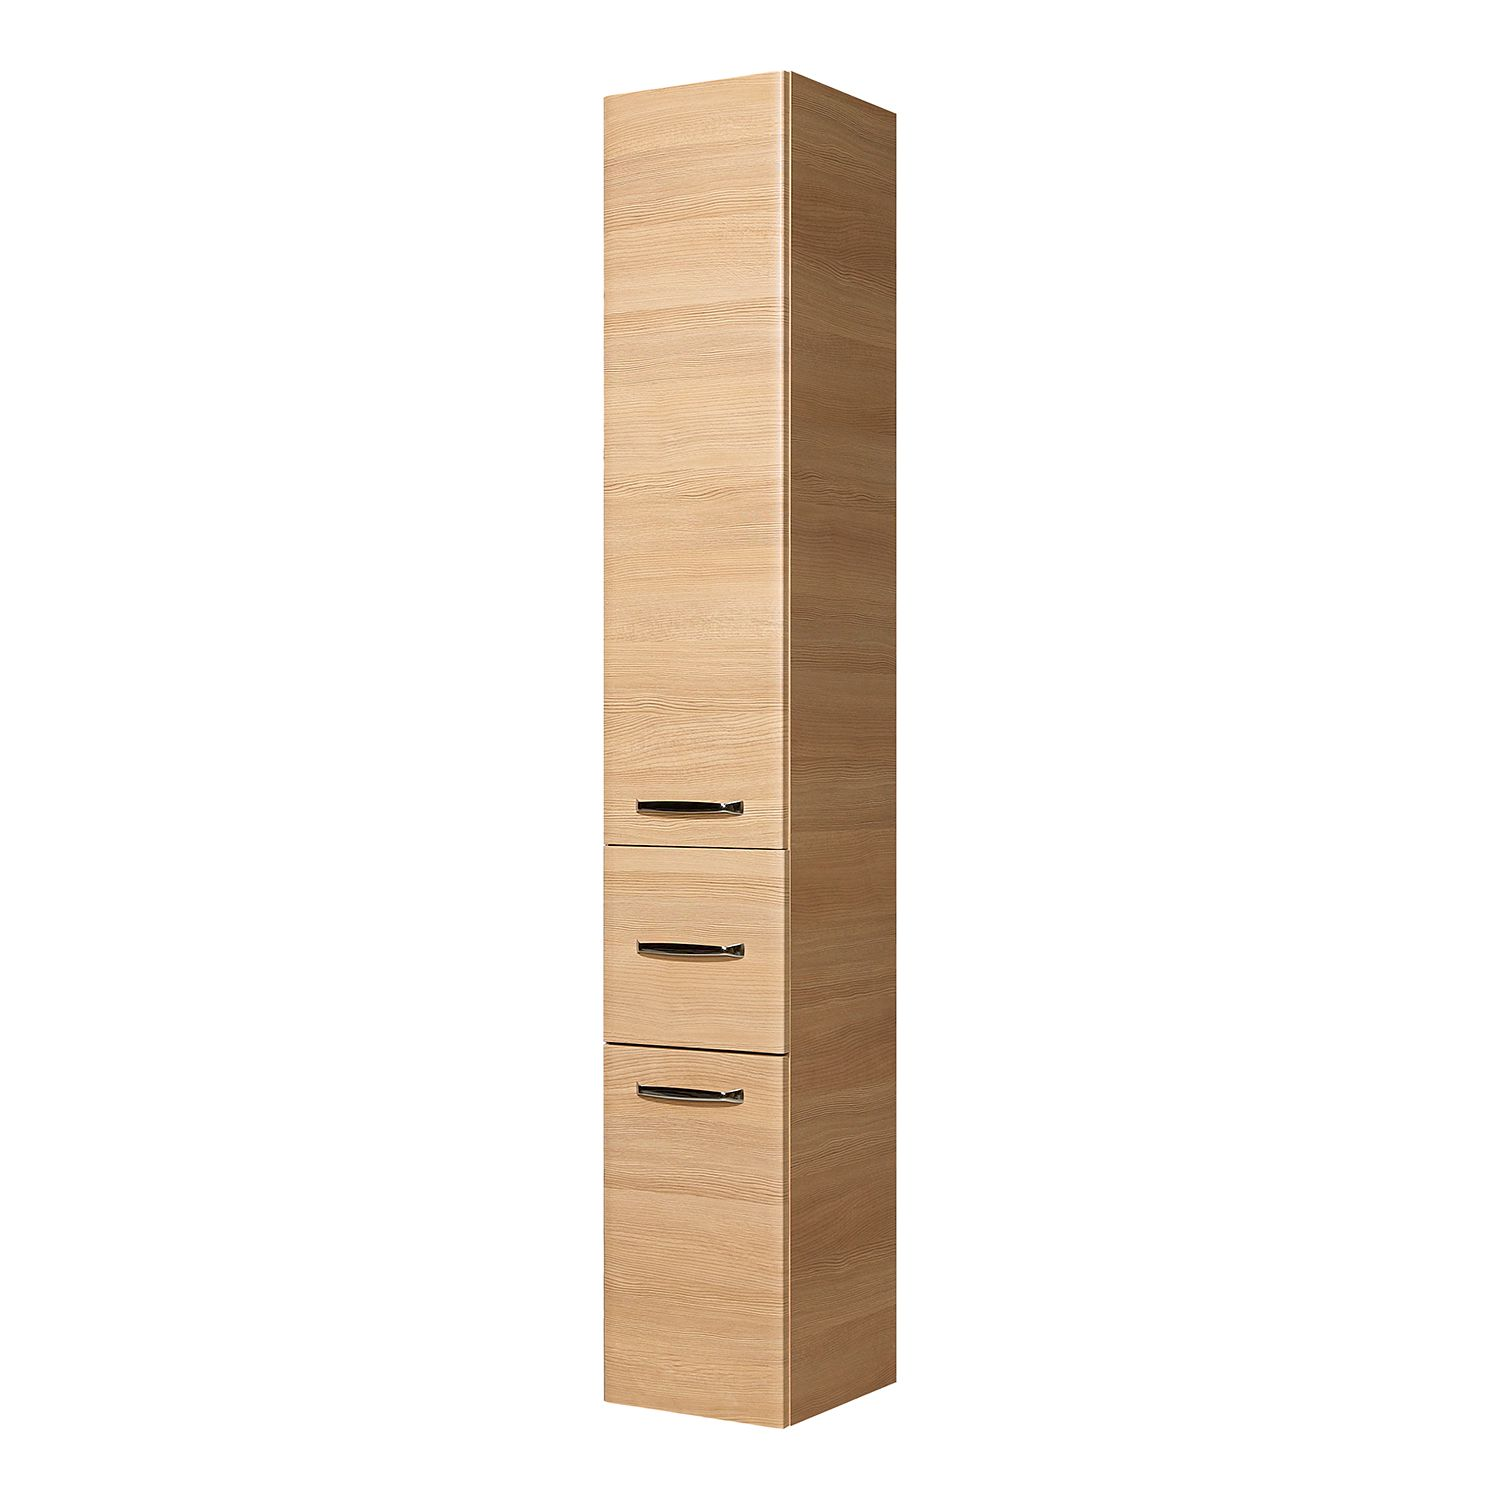 schrank 30 cm breit pelipal preisvergleiche. Black Bedroom Furniture Sets. Home Design Ideas